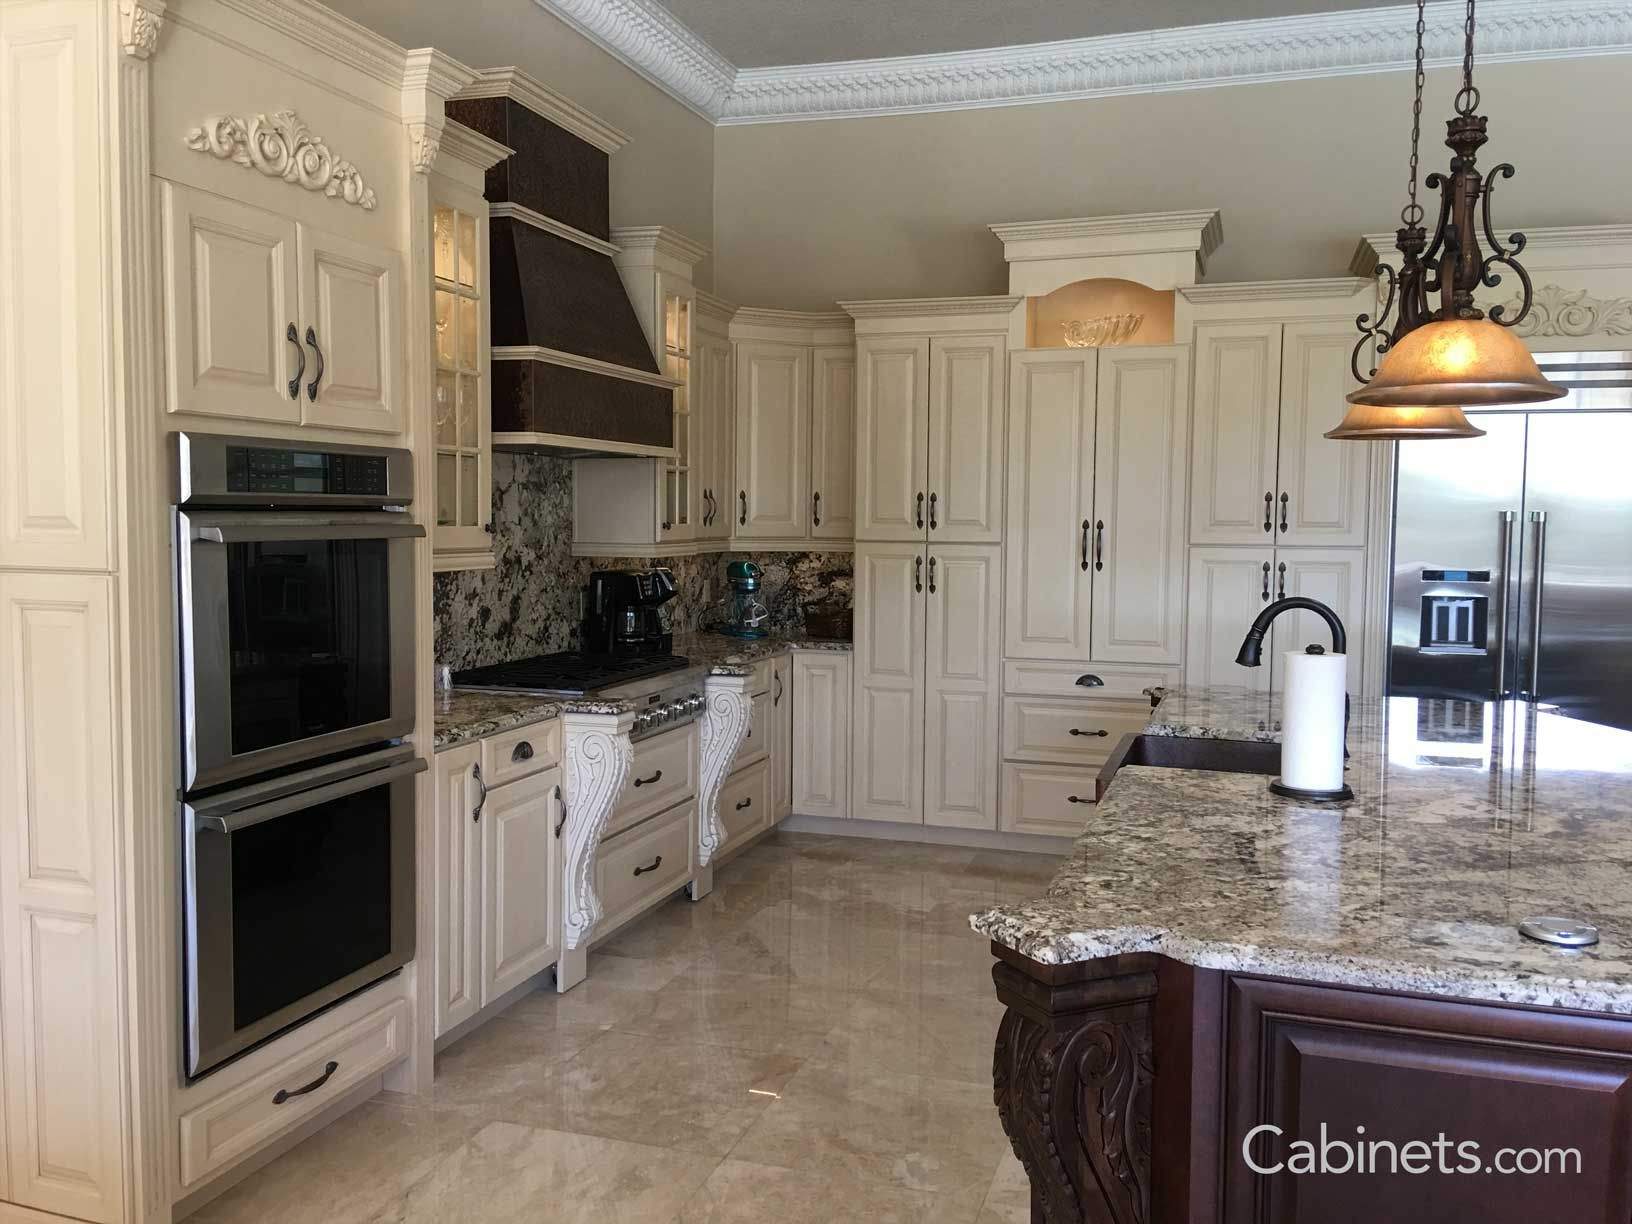 Corbels Moldings And Onlays Oh My Check Out This Ornate Victorian Kitchen Victorian Kitchen Cabinets Victorian Kitchen Kitchen Cabinets